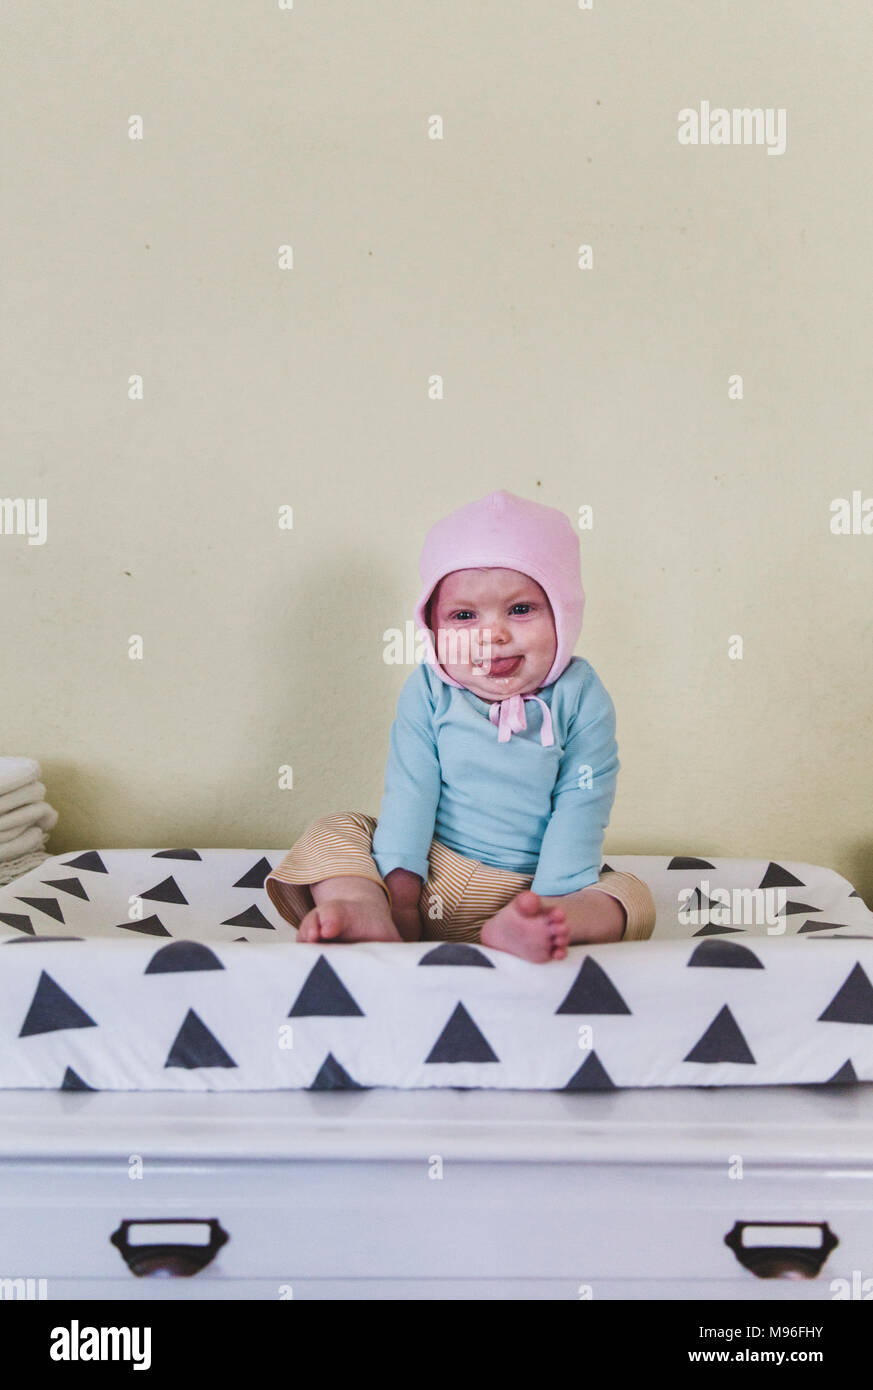 Baby with pink bonnet laughing on bed - Stock Image